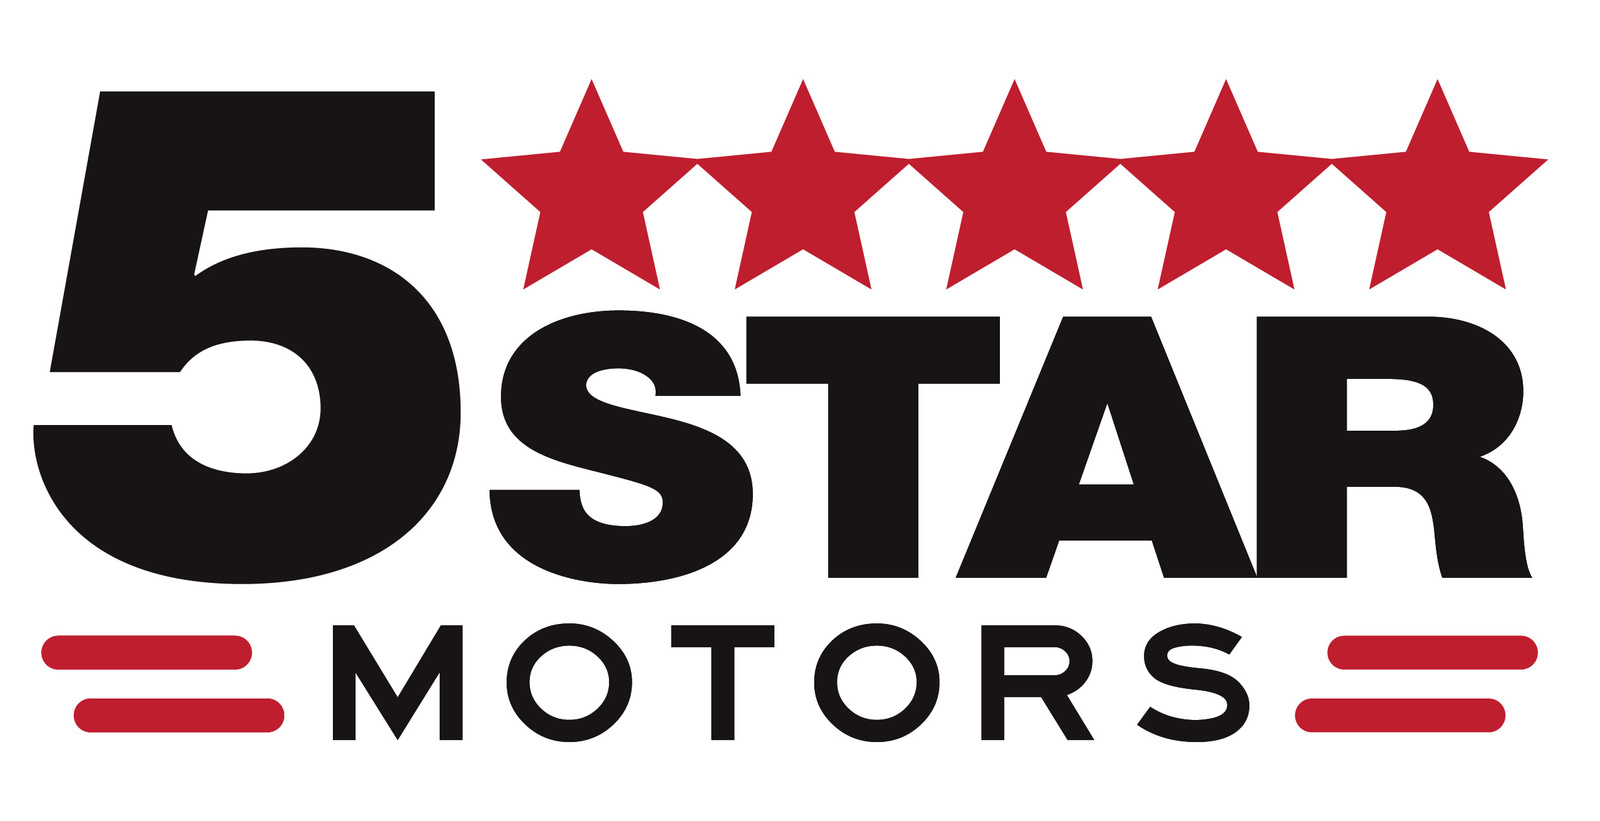 5 Star Motors Wichita Ks Read Consumer Reviews Browse